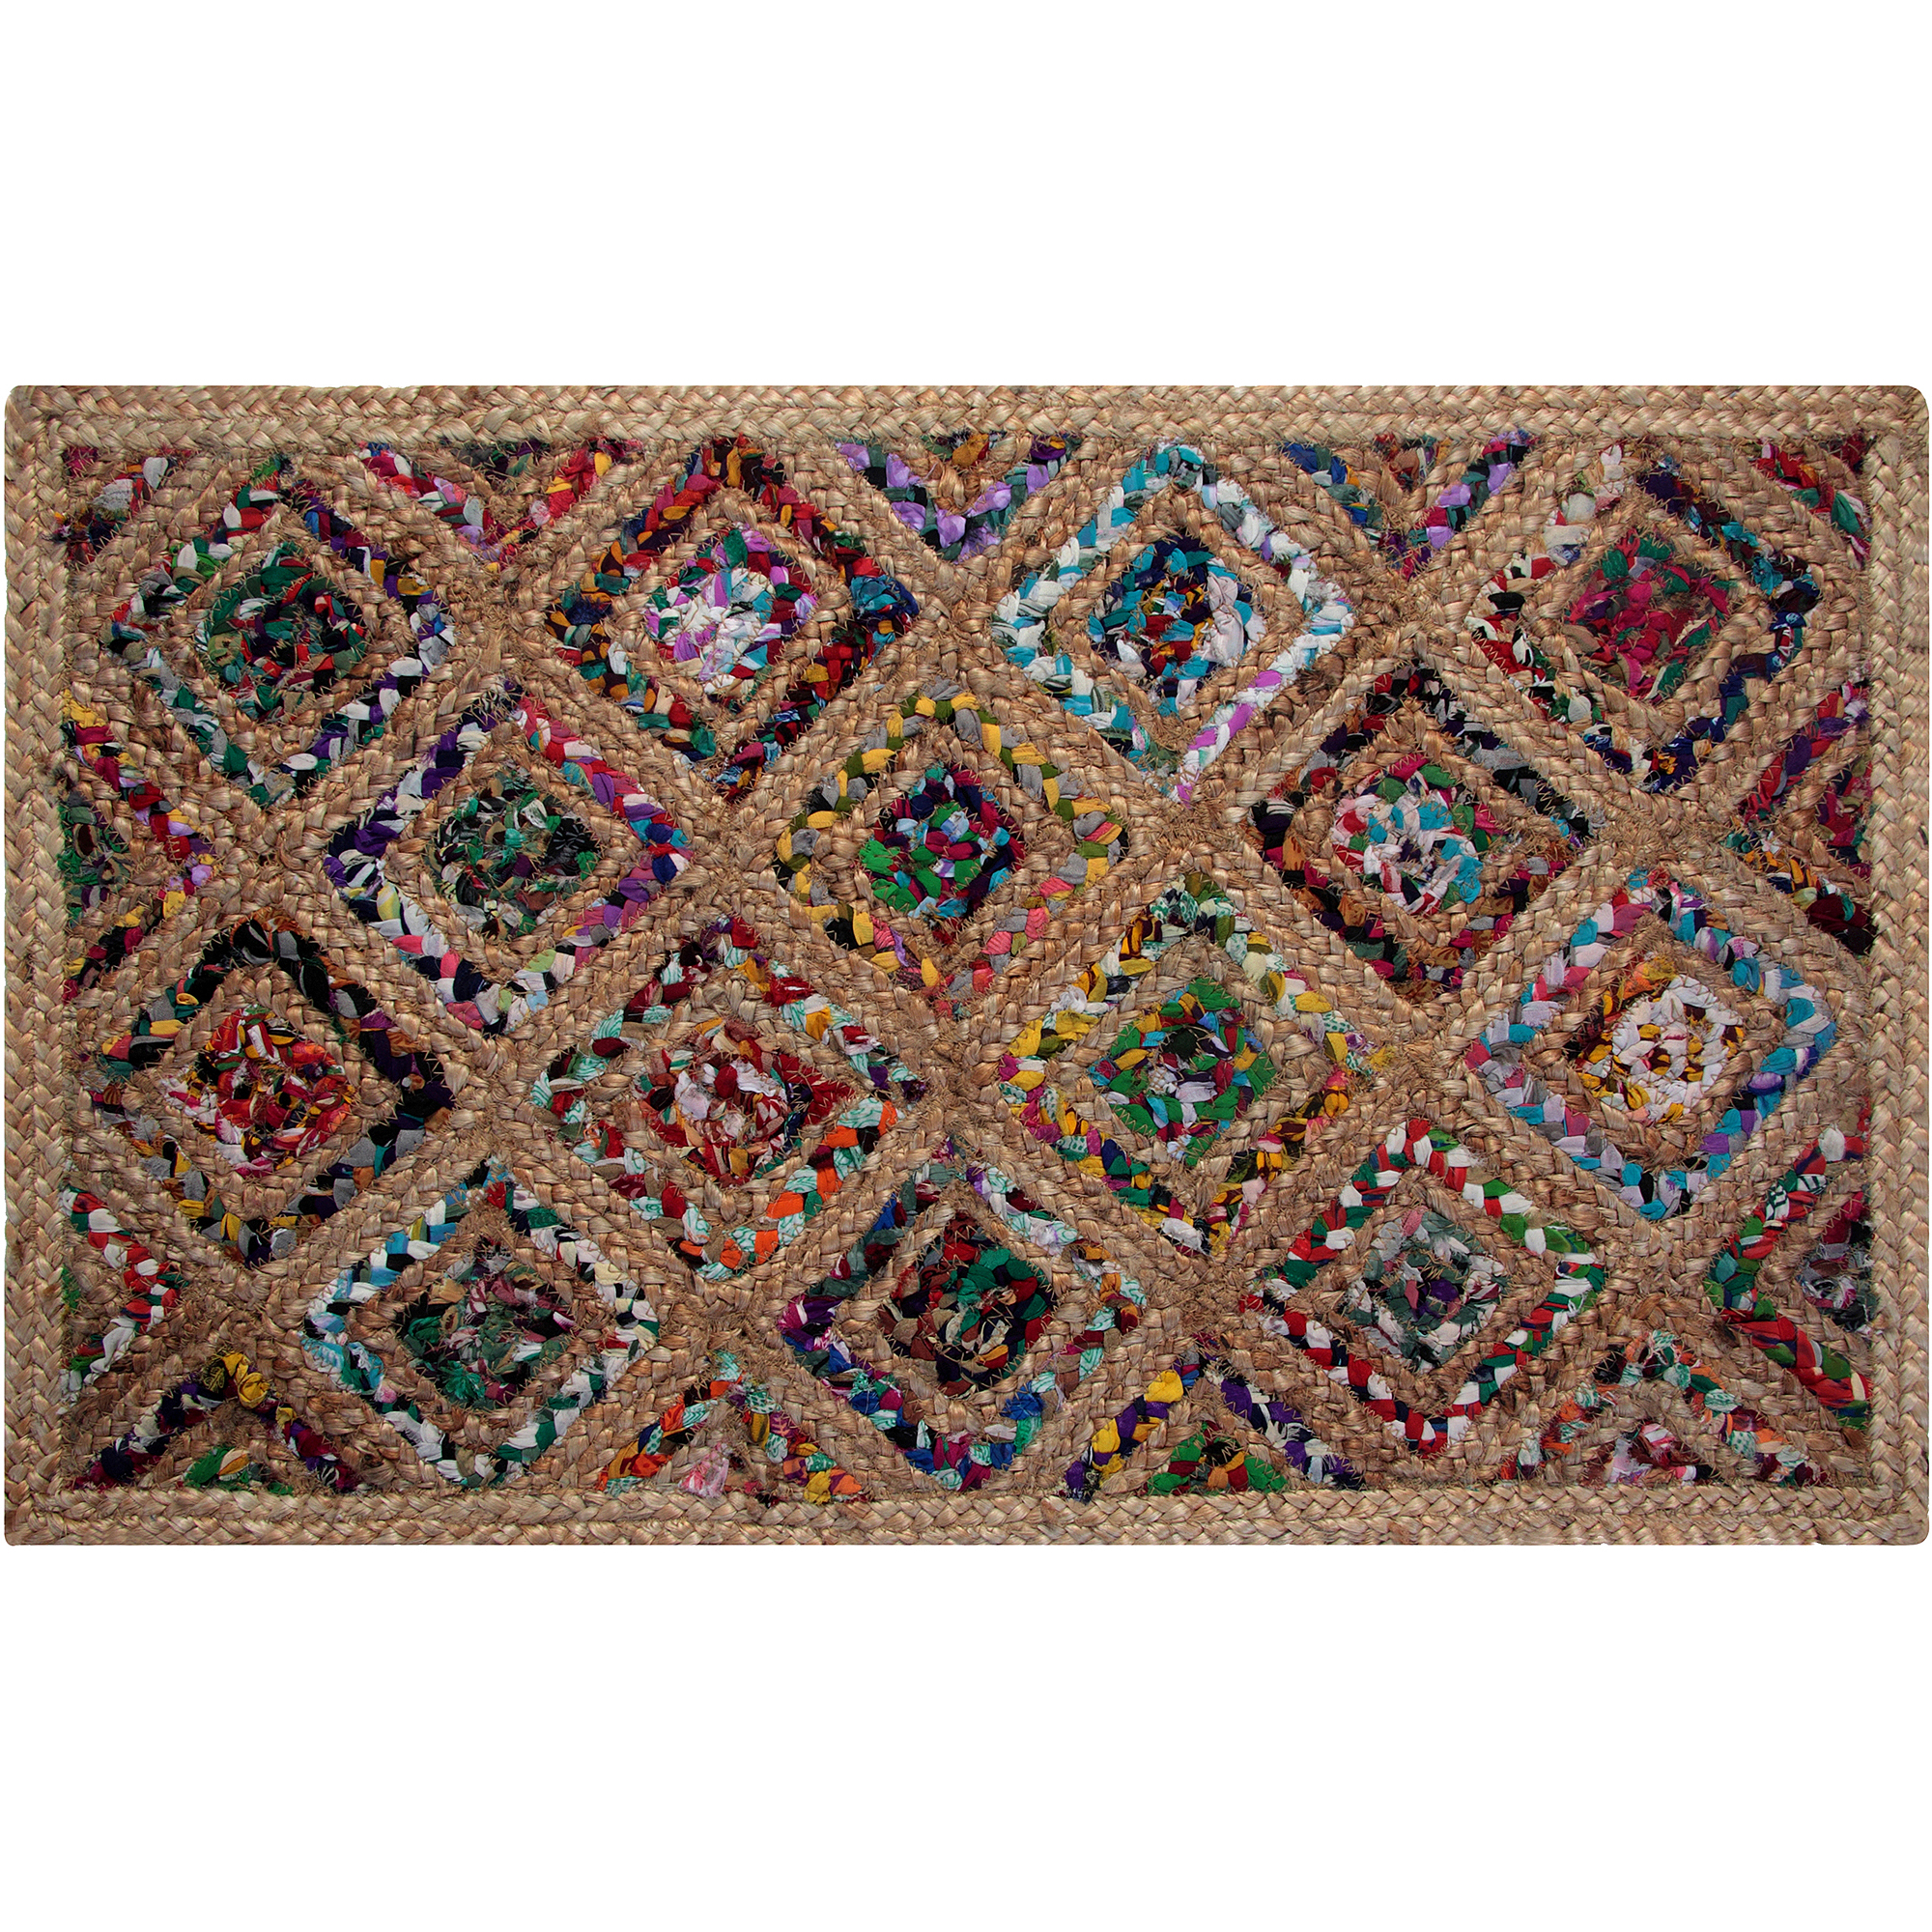 Diamond Natural Hemp and Dyed Chindi Braided Rug, Multi-Color, 3' x 5' by Pam Overseas LLC